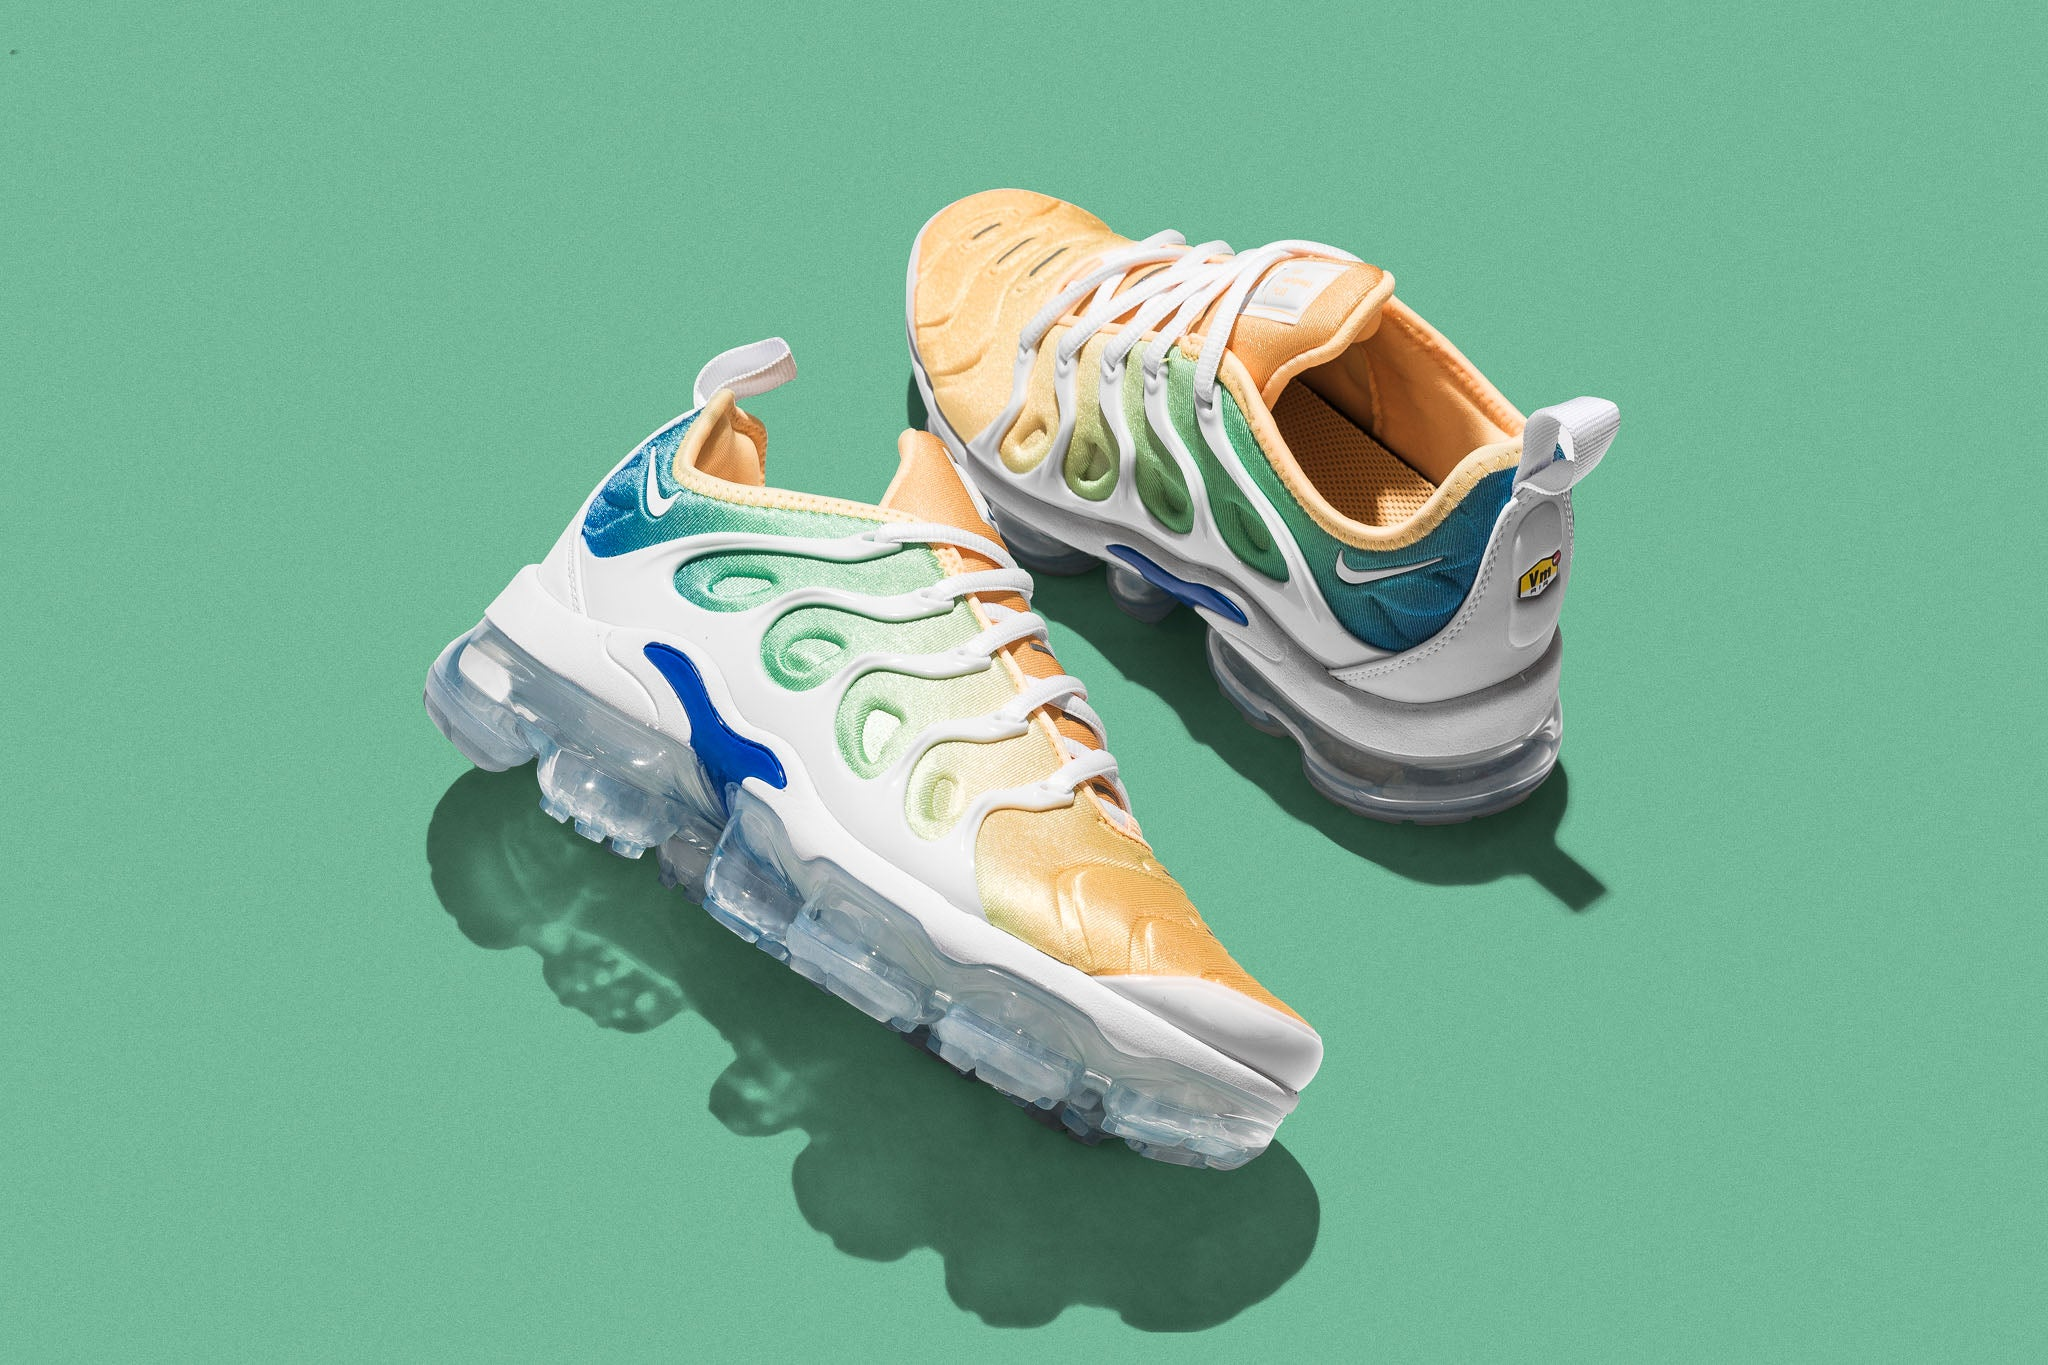 finest selection 0c1bb 009bc The Air Vapormax Plus combines both the Air Max Plus and VaporMax  technology for a striking silhouette that s sure to turn heads.